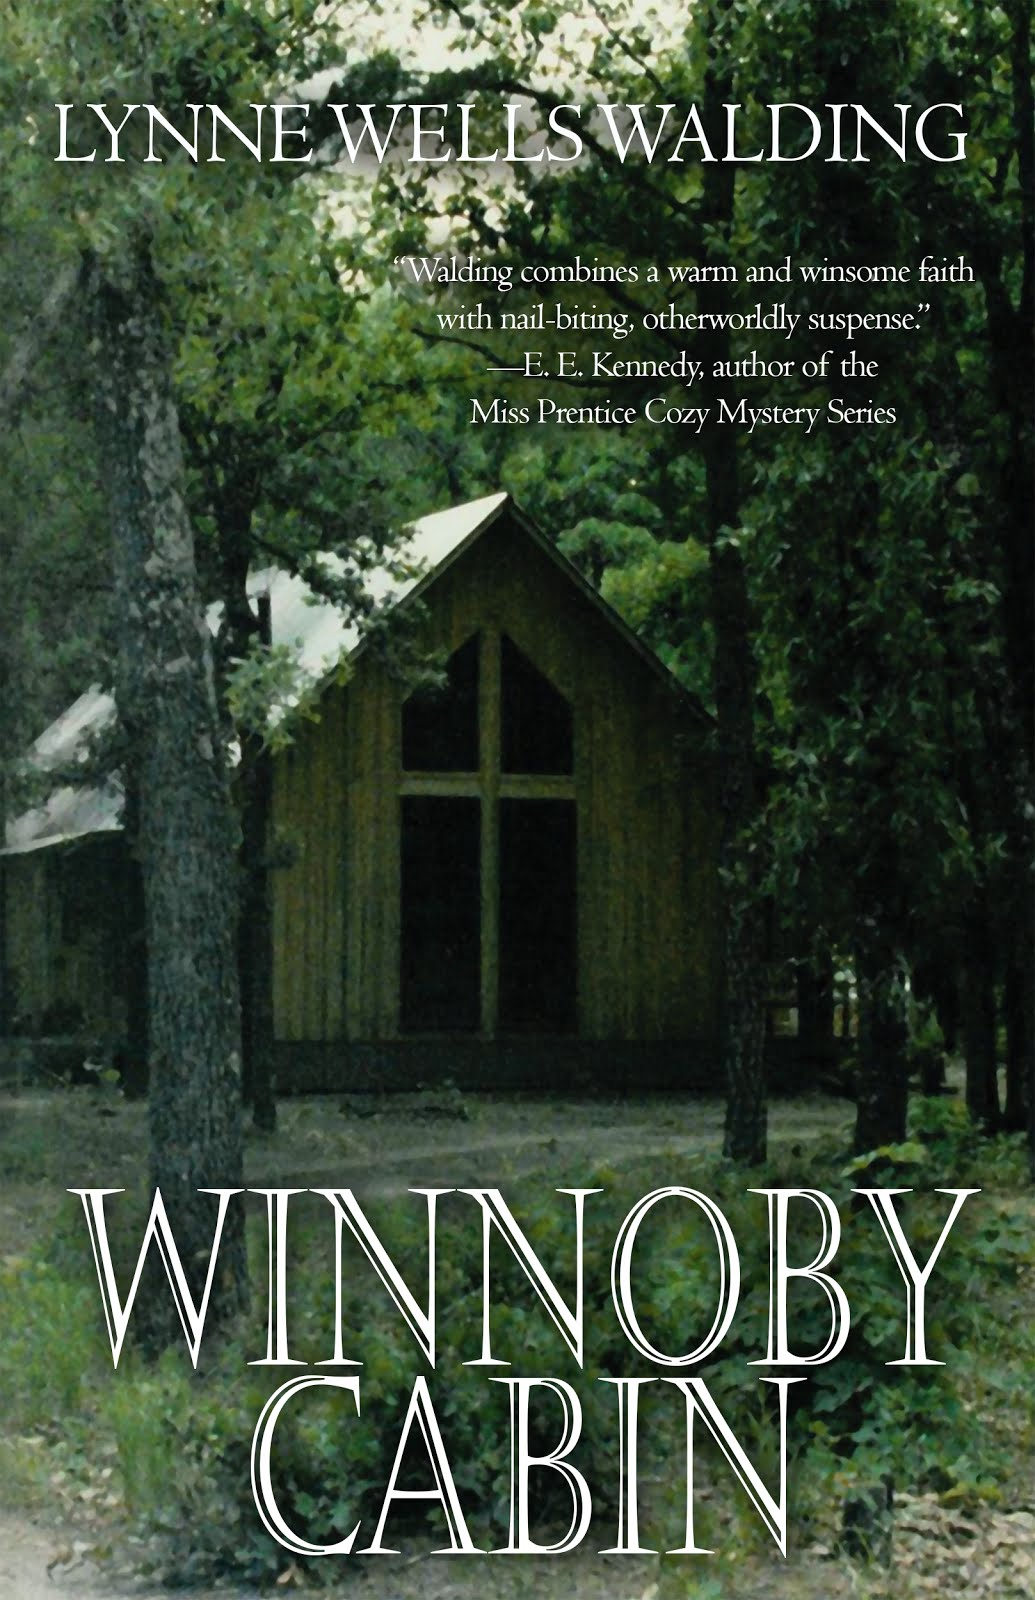 Three love stories entertwined in this Christian suspense story.